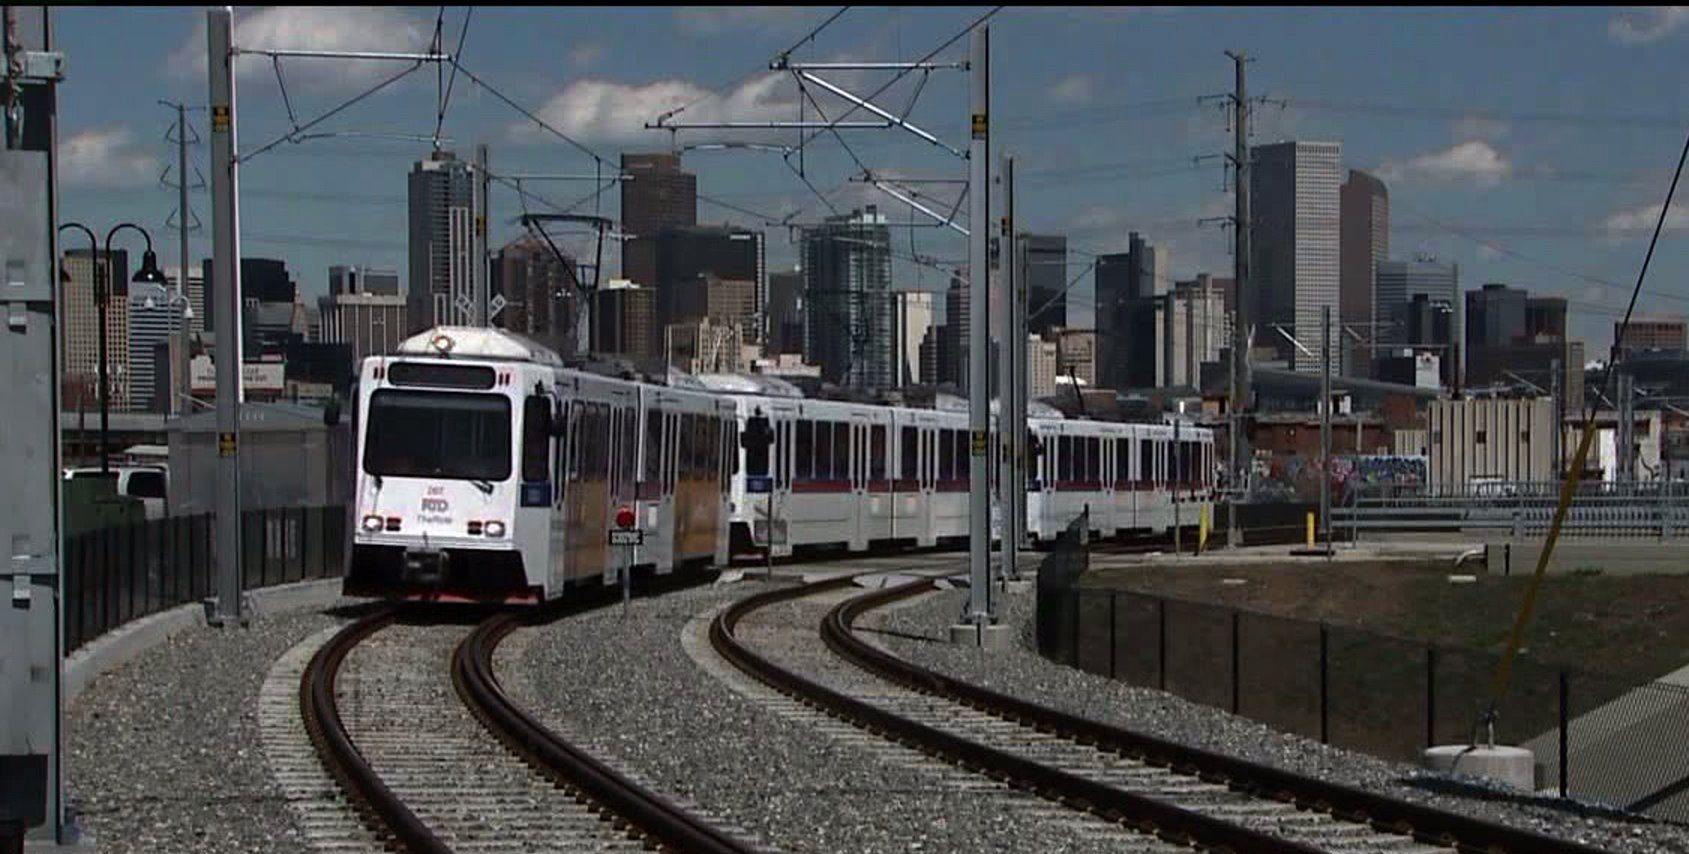 RTD light rail train in Denver